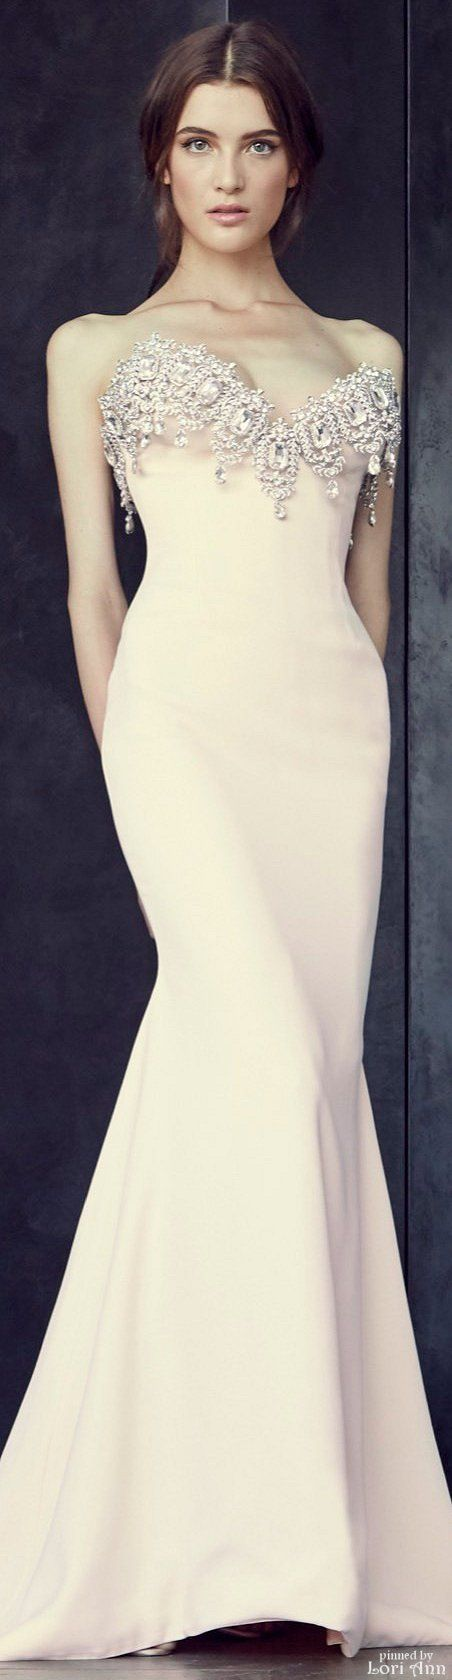 Alexis Mabille Couture Fall 2015 ❤